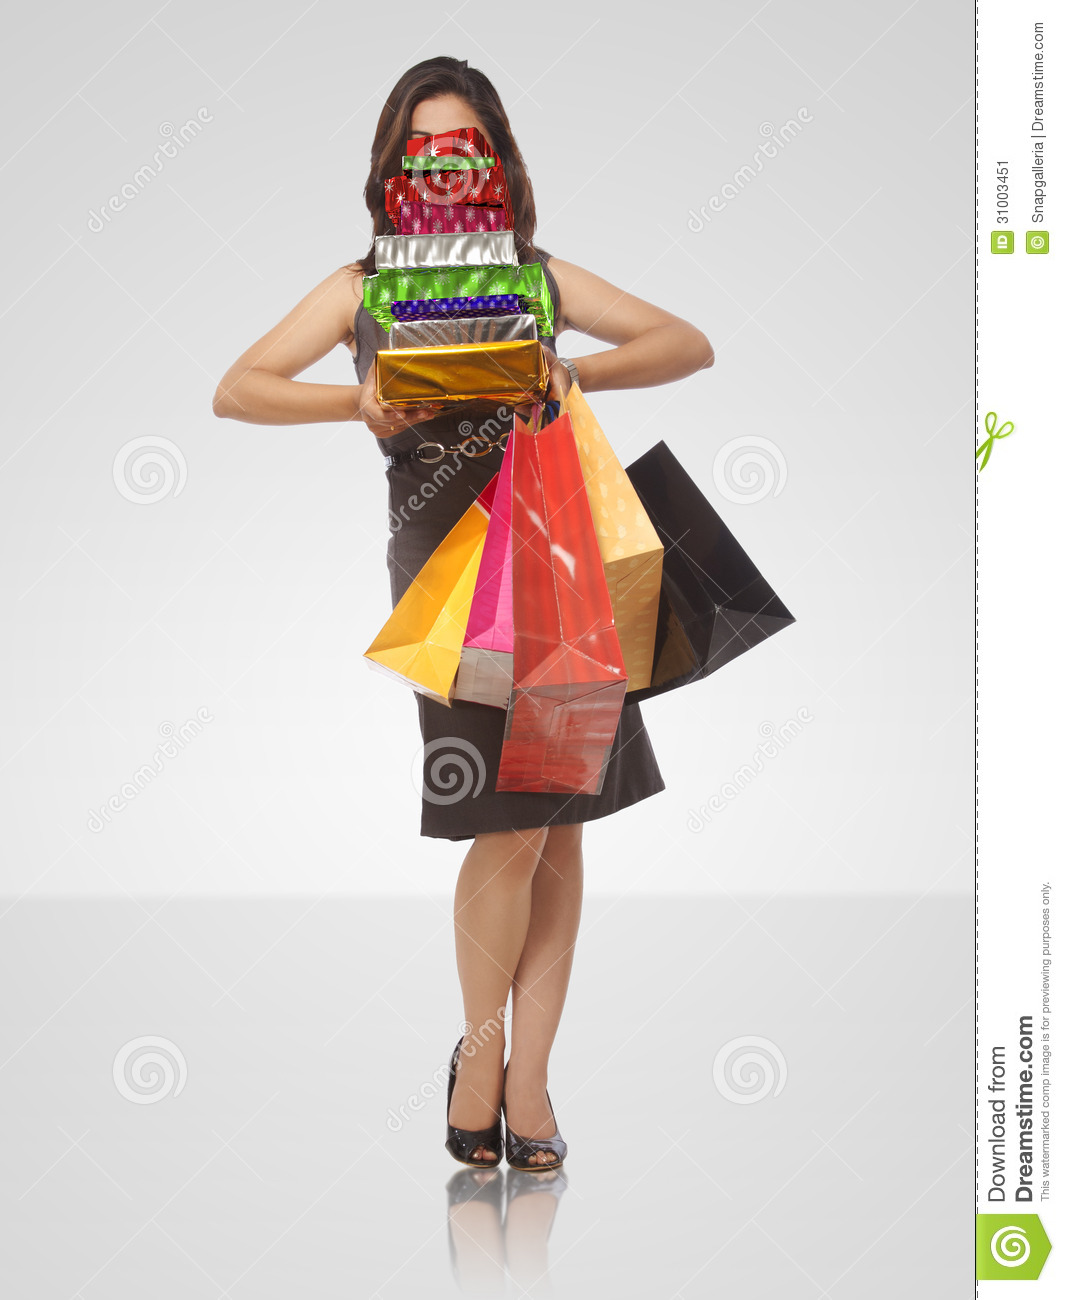 Young Lady With Shopping Bags Stock Image   Image  31003451